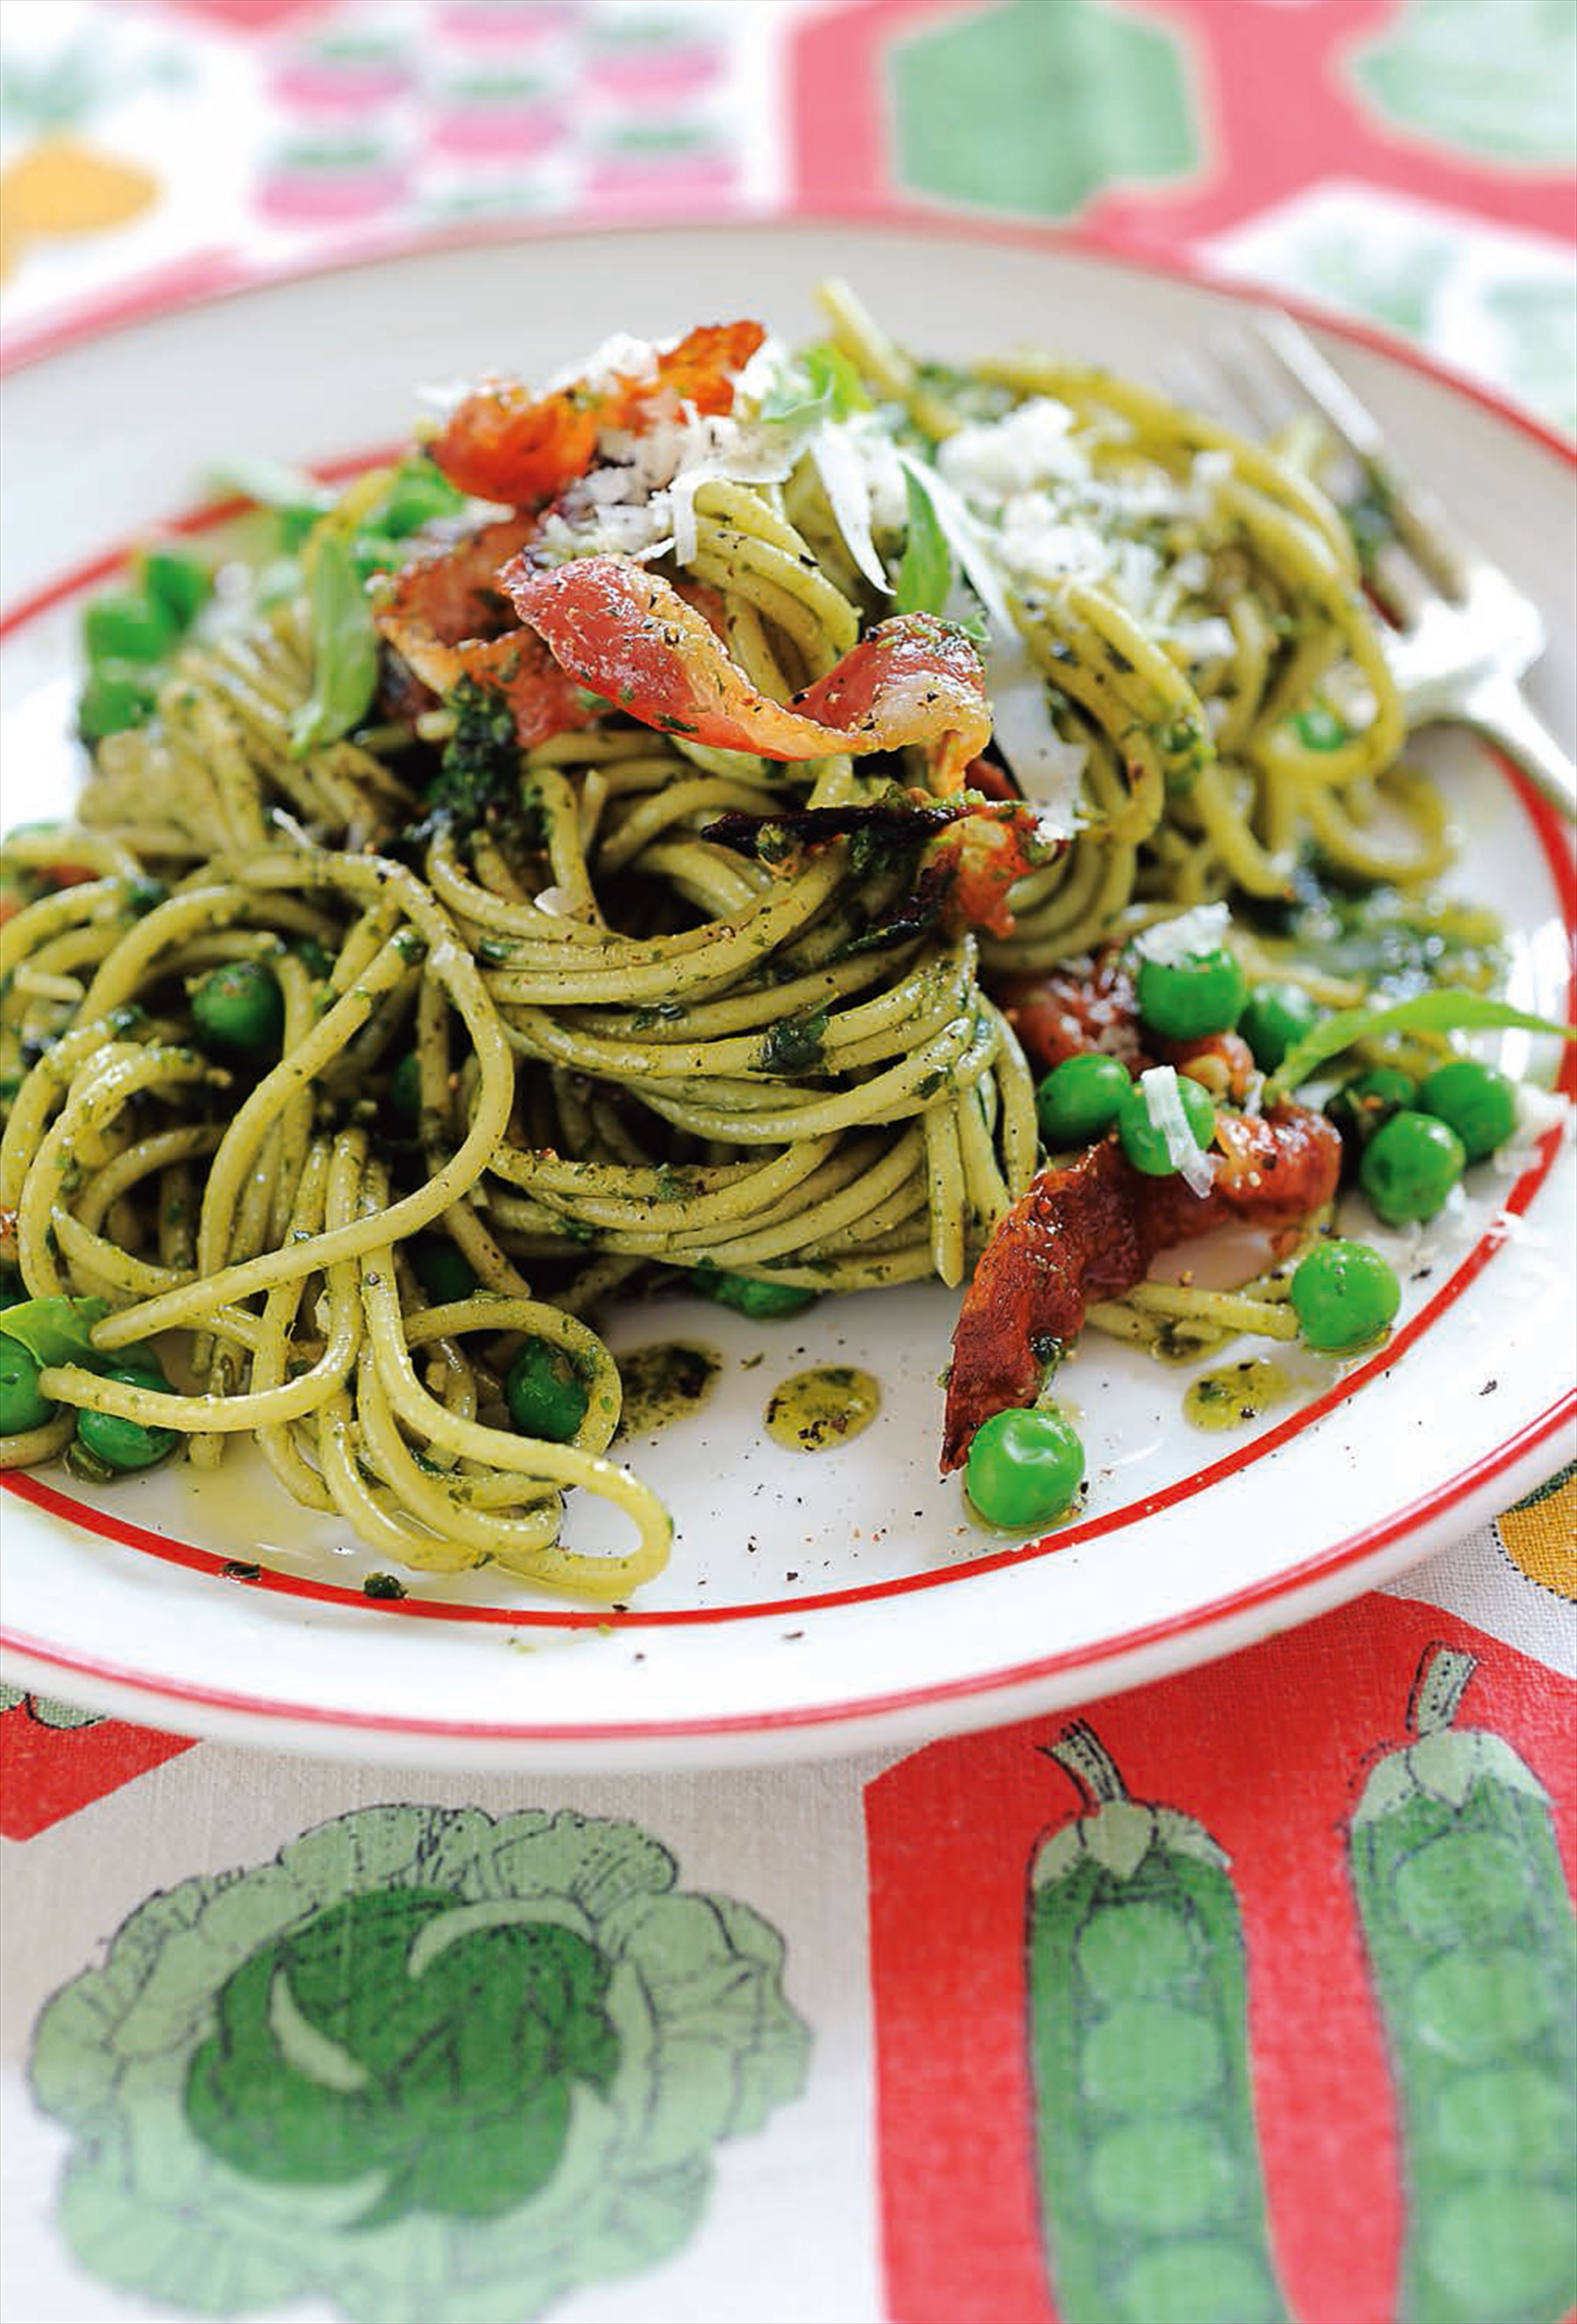 Spaghetti with pesto, peas and pancetta